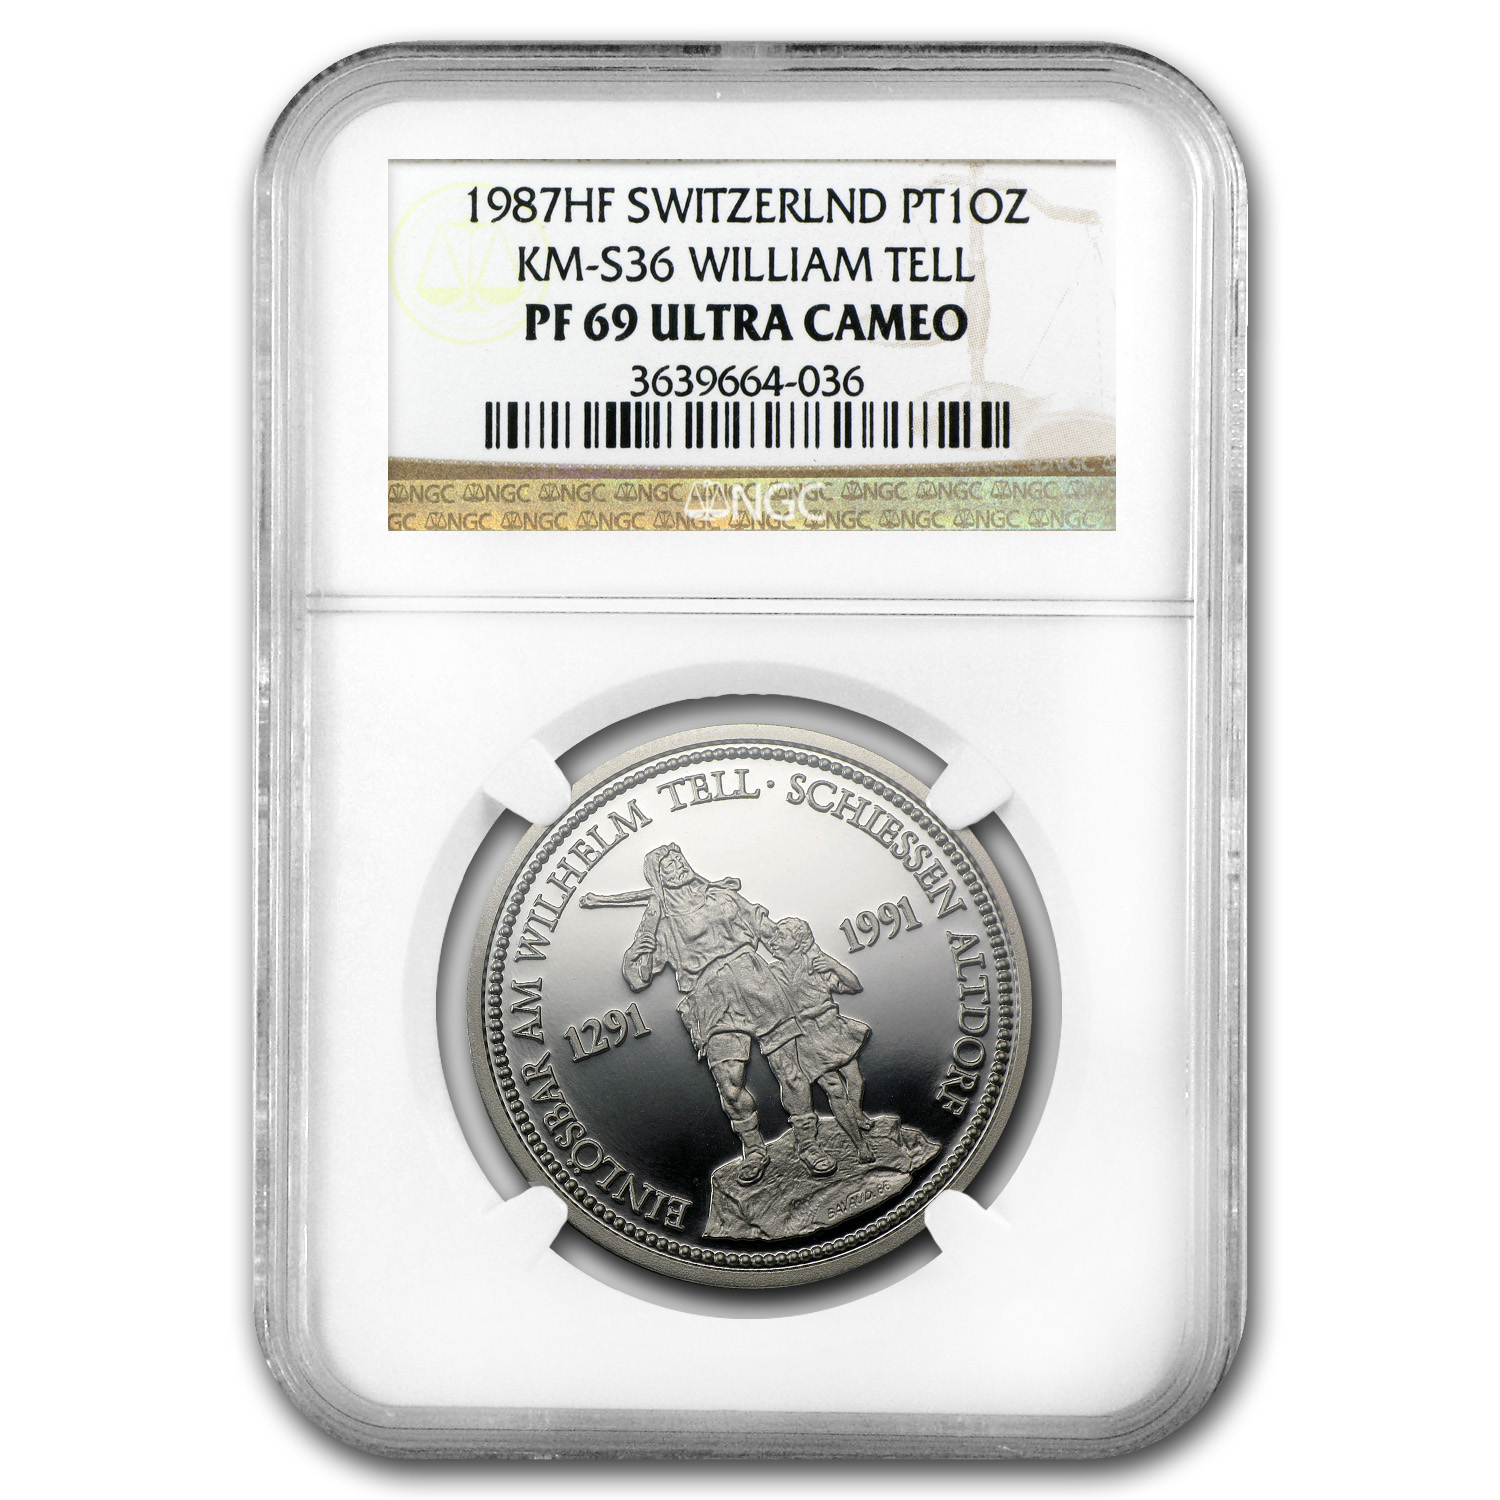 1987 Switzerland 1 oz Proof Platinum William Tell PF-69 NGC